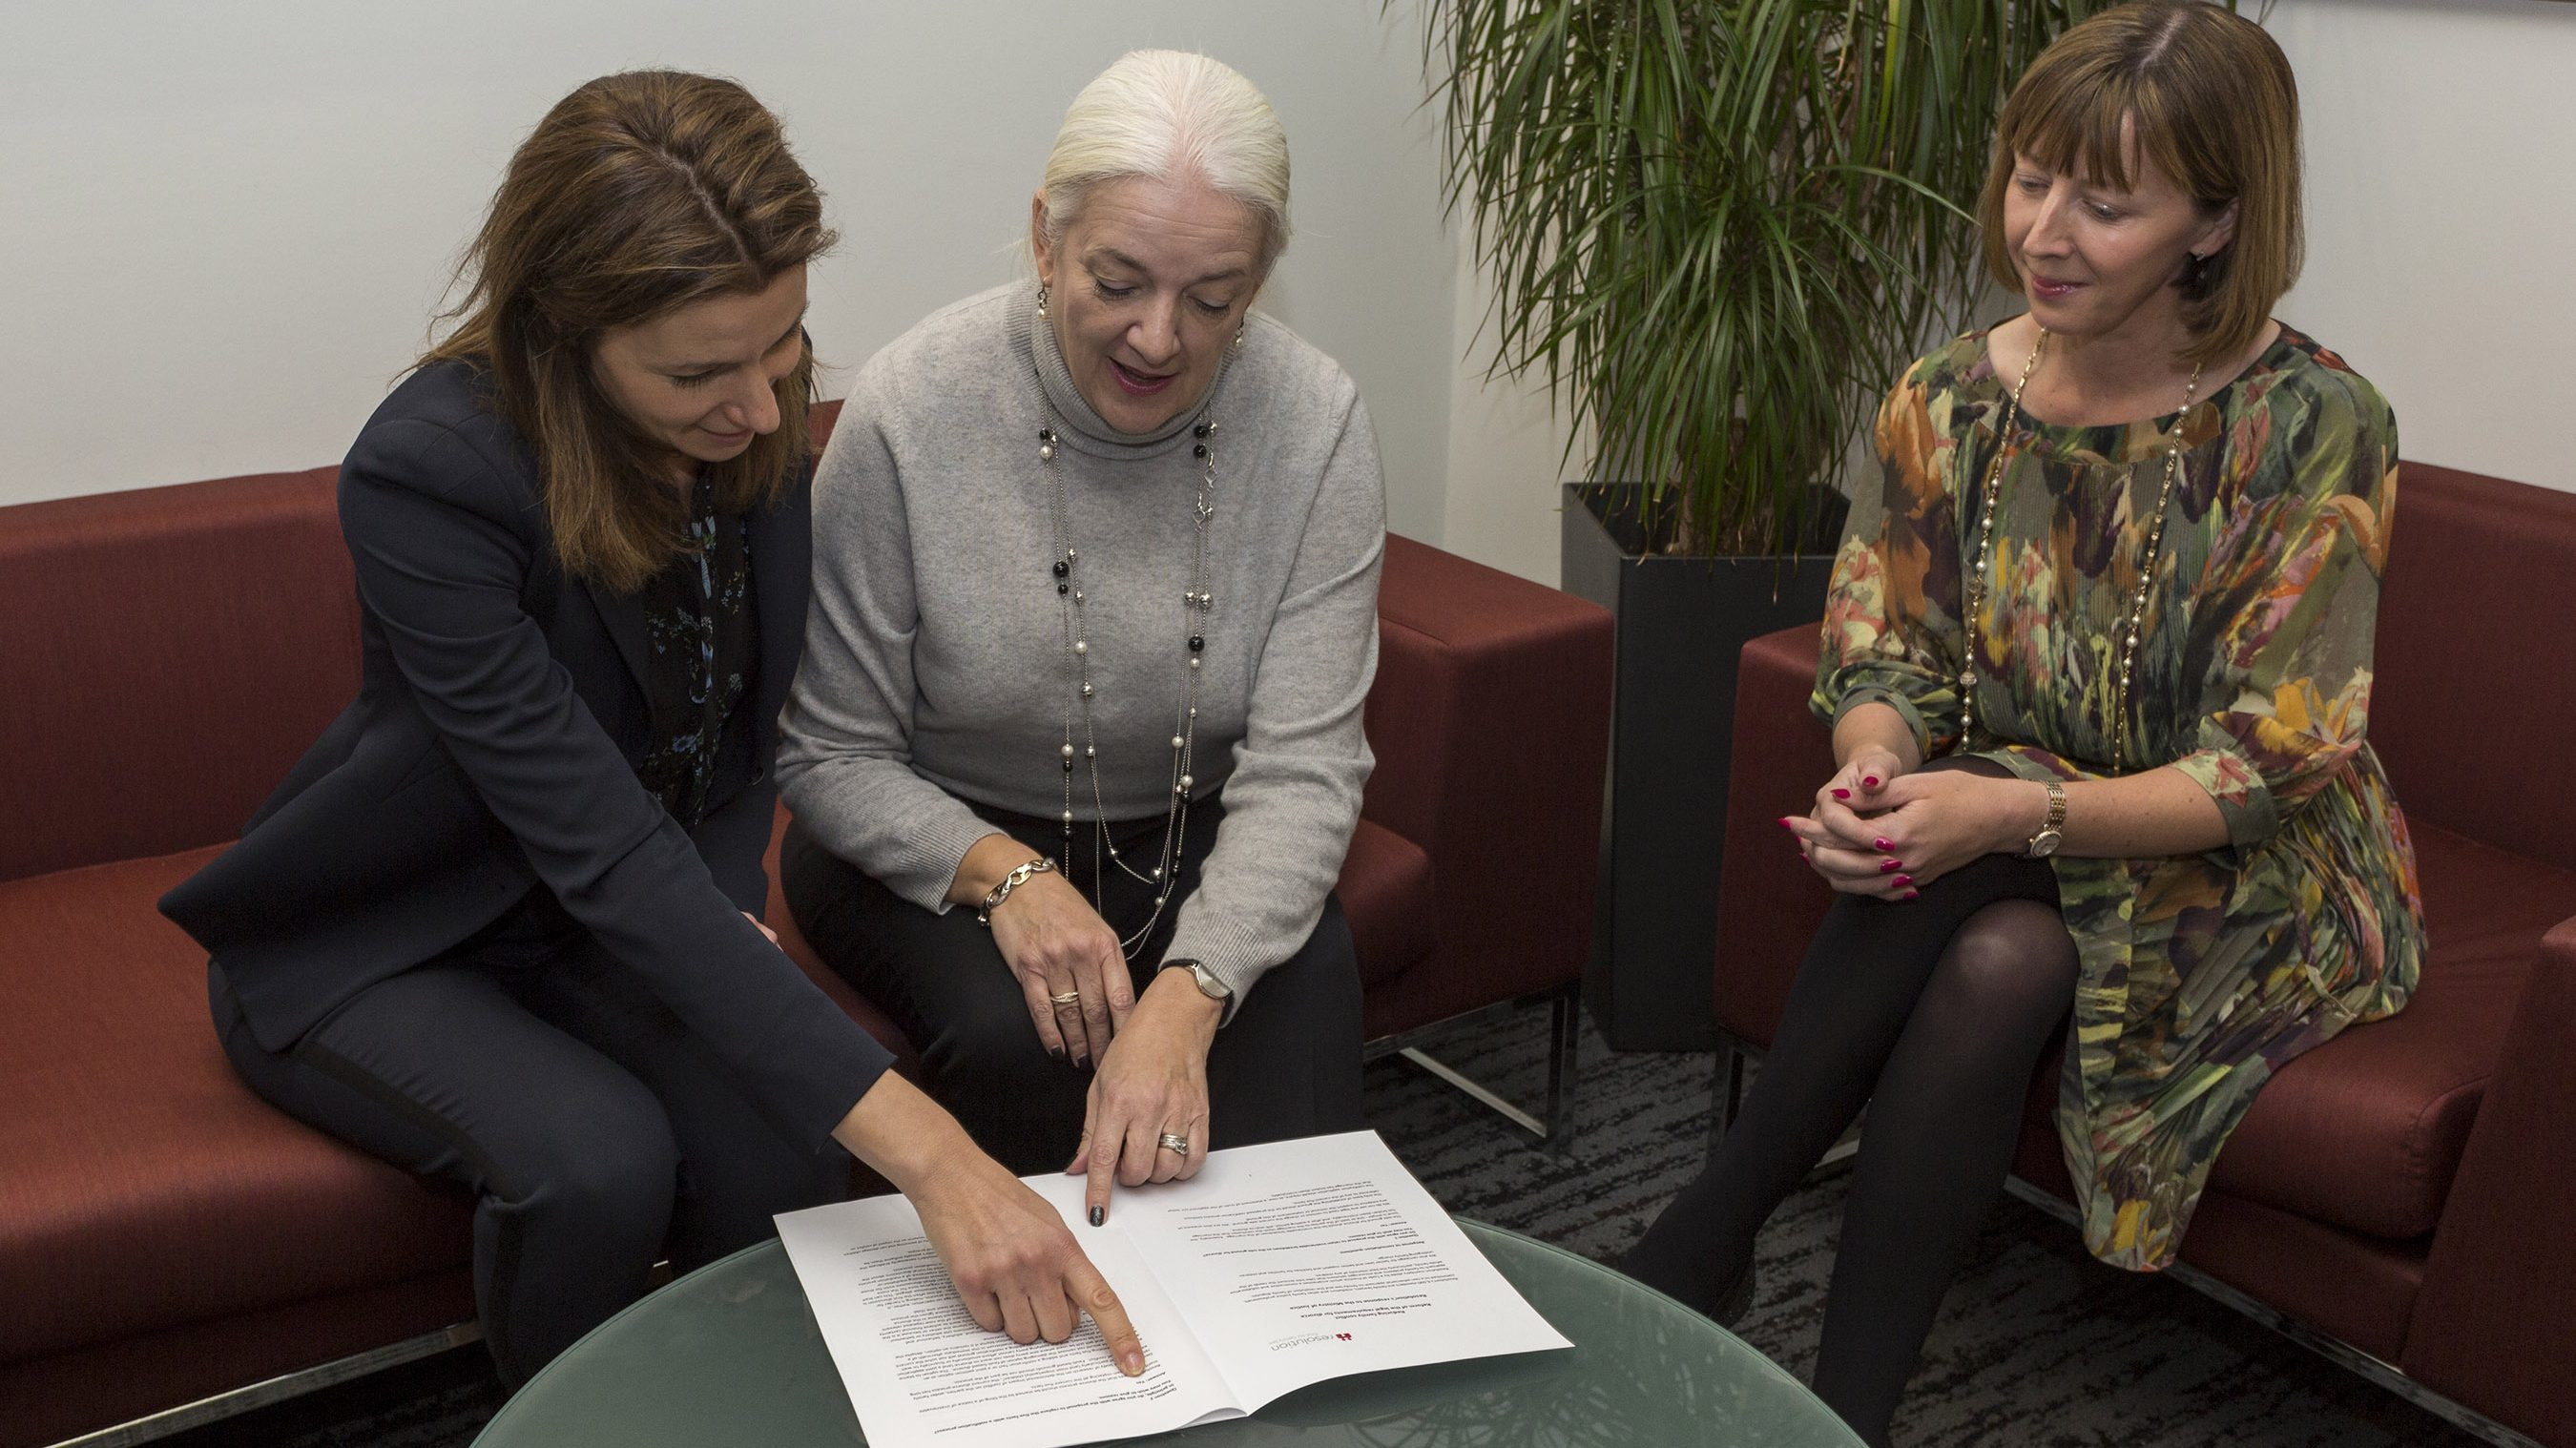 Family Justice Minister Lucy Fraser, National Chair Margaret Heathcote and Family Law Reform Group Chair Jo Edwards discuss Resolution's response to the divorce law reform consultation